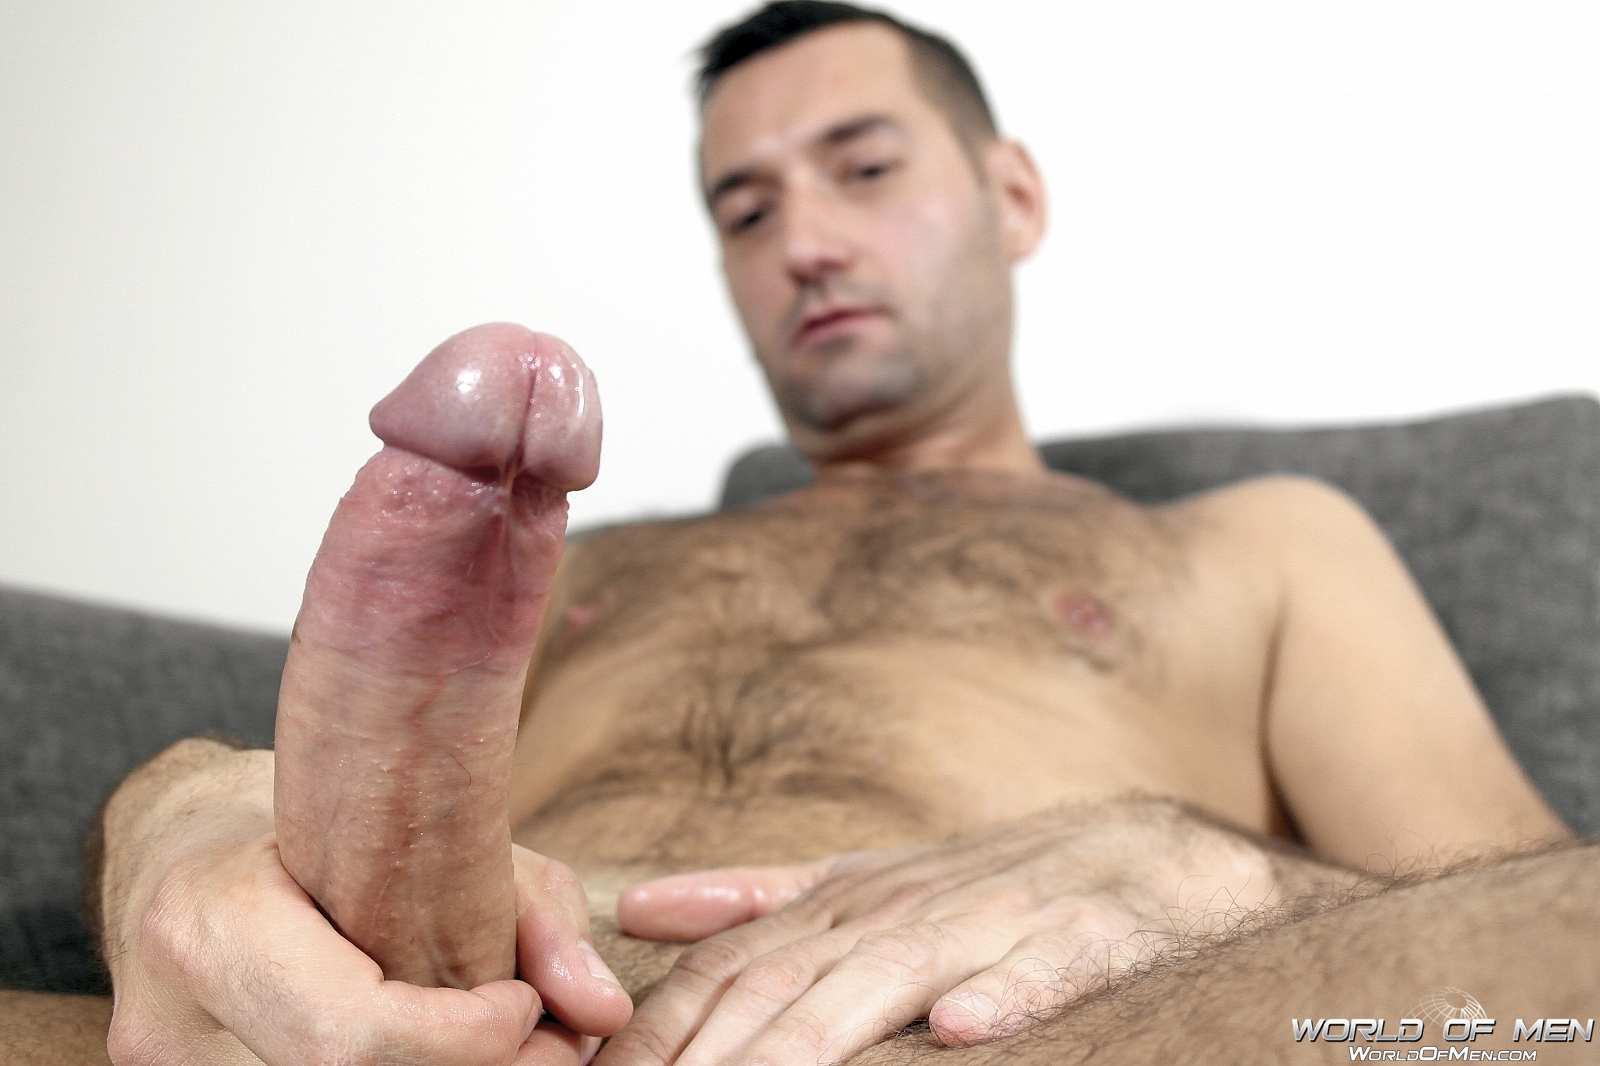 World-Of-Men-Chris-ADam-Big-Uncut-Cock-Jerk-Off-Masturbation-Amateur-Gay-Porn-15 Hairy Sexy Stud Fingers His Ass And Plays With His Huge Uncut Cock